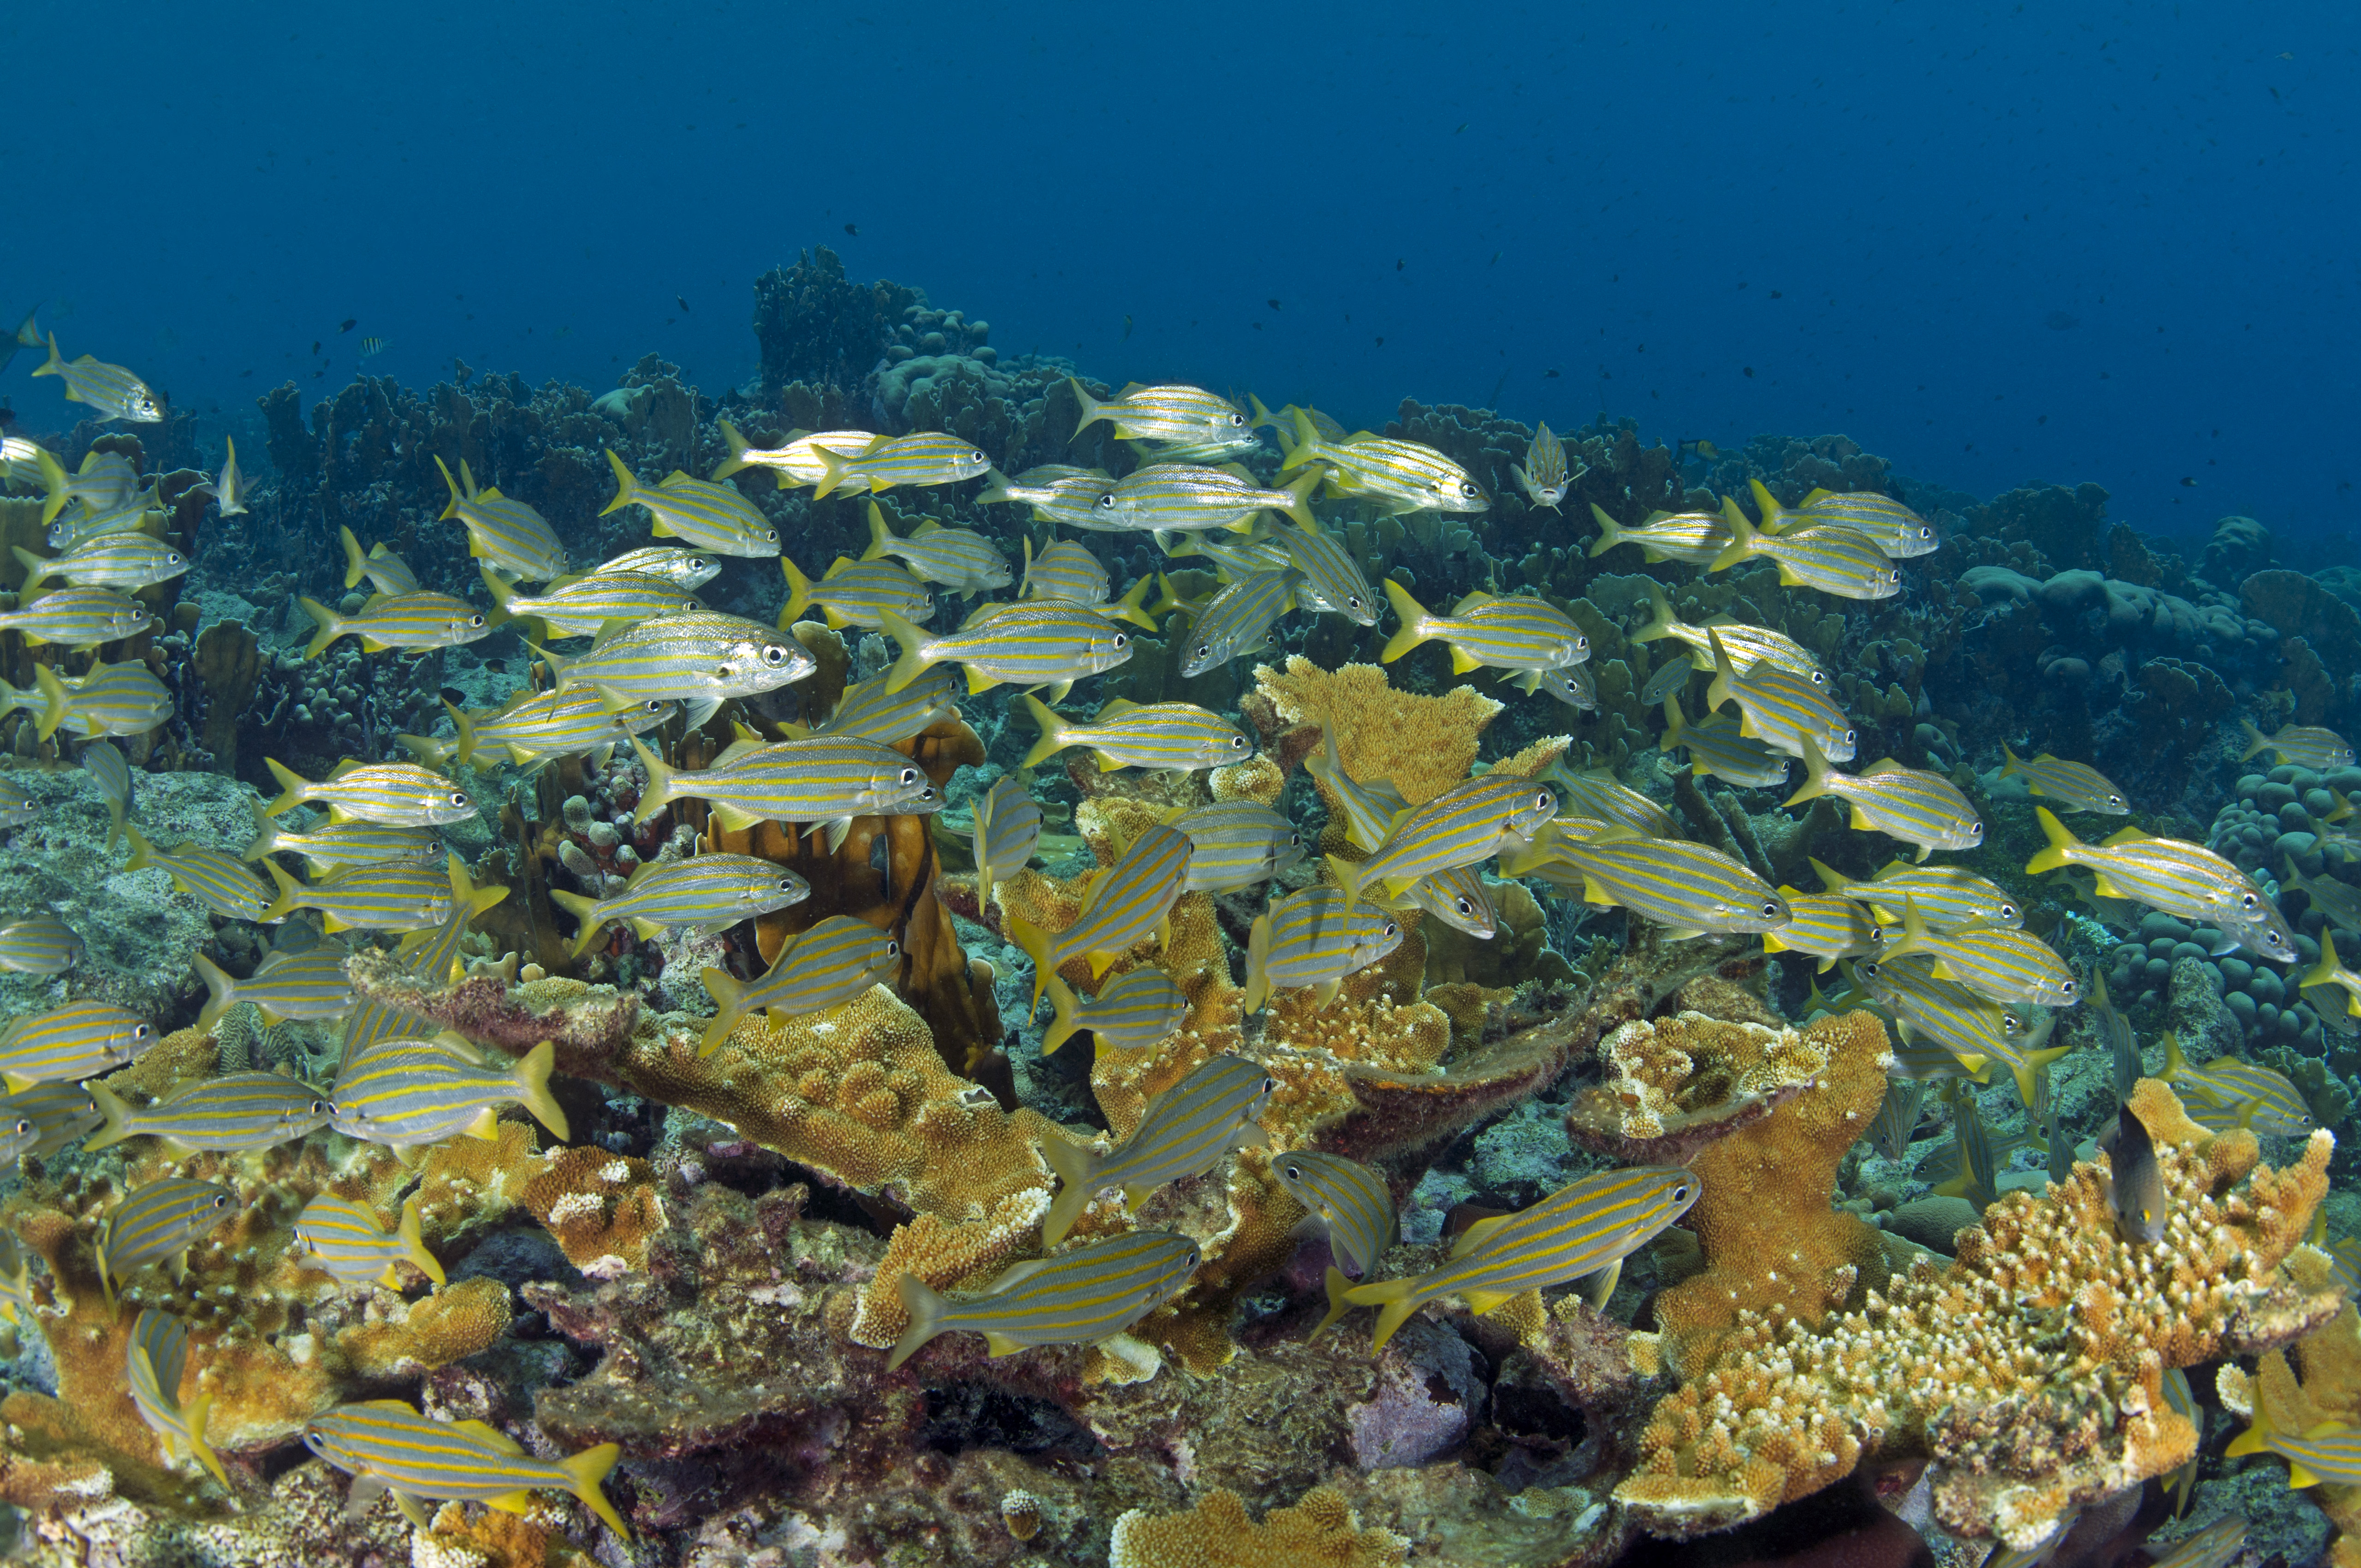 School of smallmouth grunts (Haemulon chrysargyreum) over the coral reef, Curacao, Netherlands Antilles.